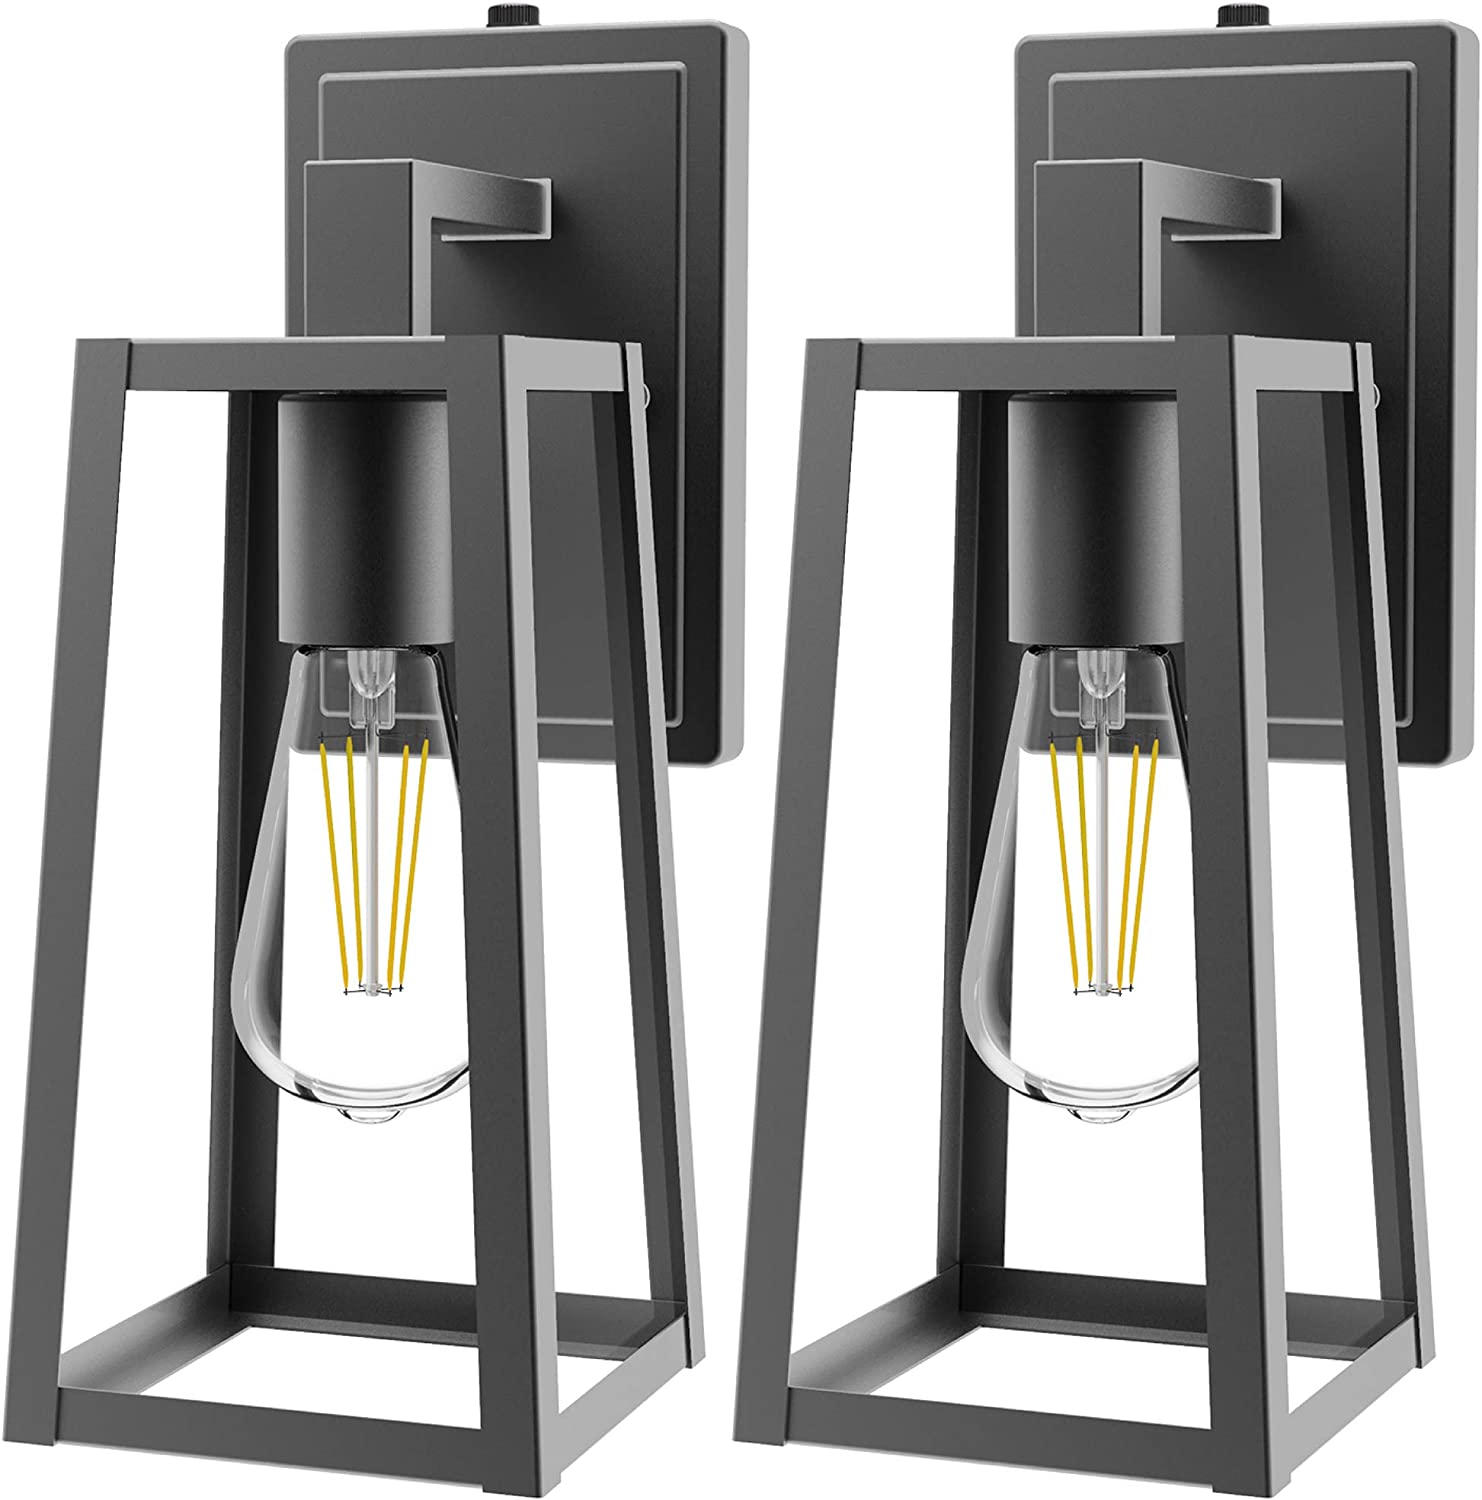 Sunco Lighting Cage Wall Sconce, Matte Black, Clear Glass Shade, Dusk-to-Dawn Photocell Sensor, Outdoor Lantern, Warm White Filament Bulb Included (E26 Base), Waterproof, Porch, Patio, Entryway